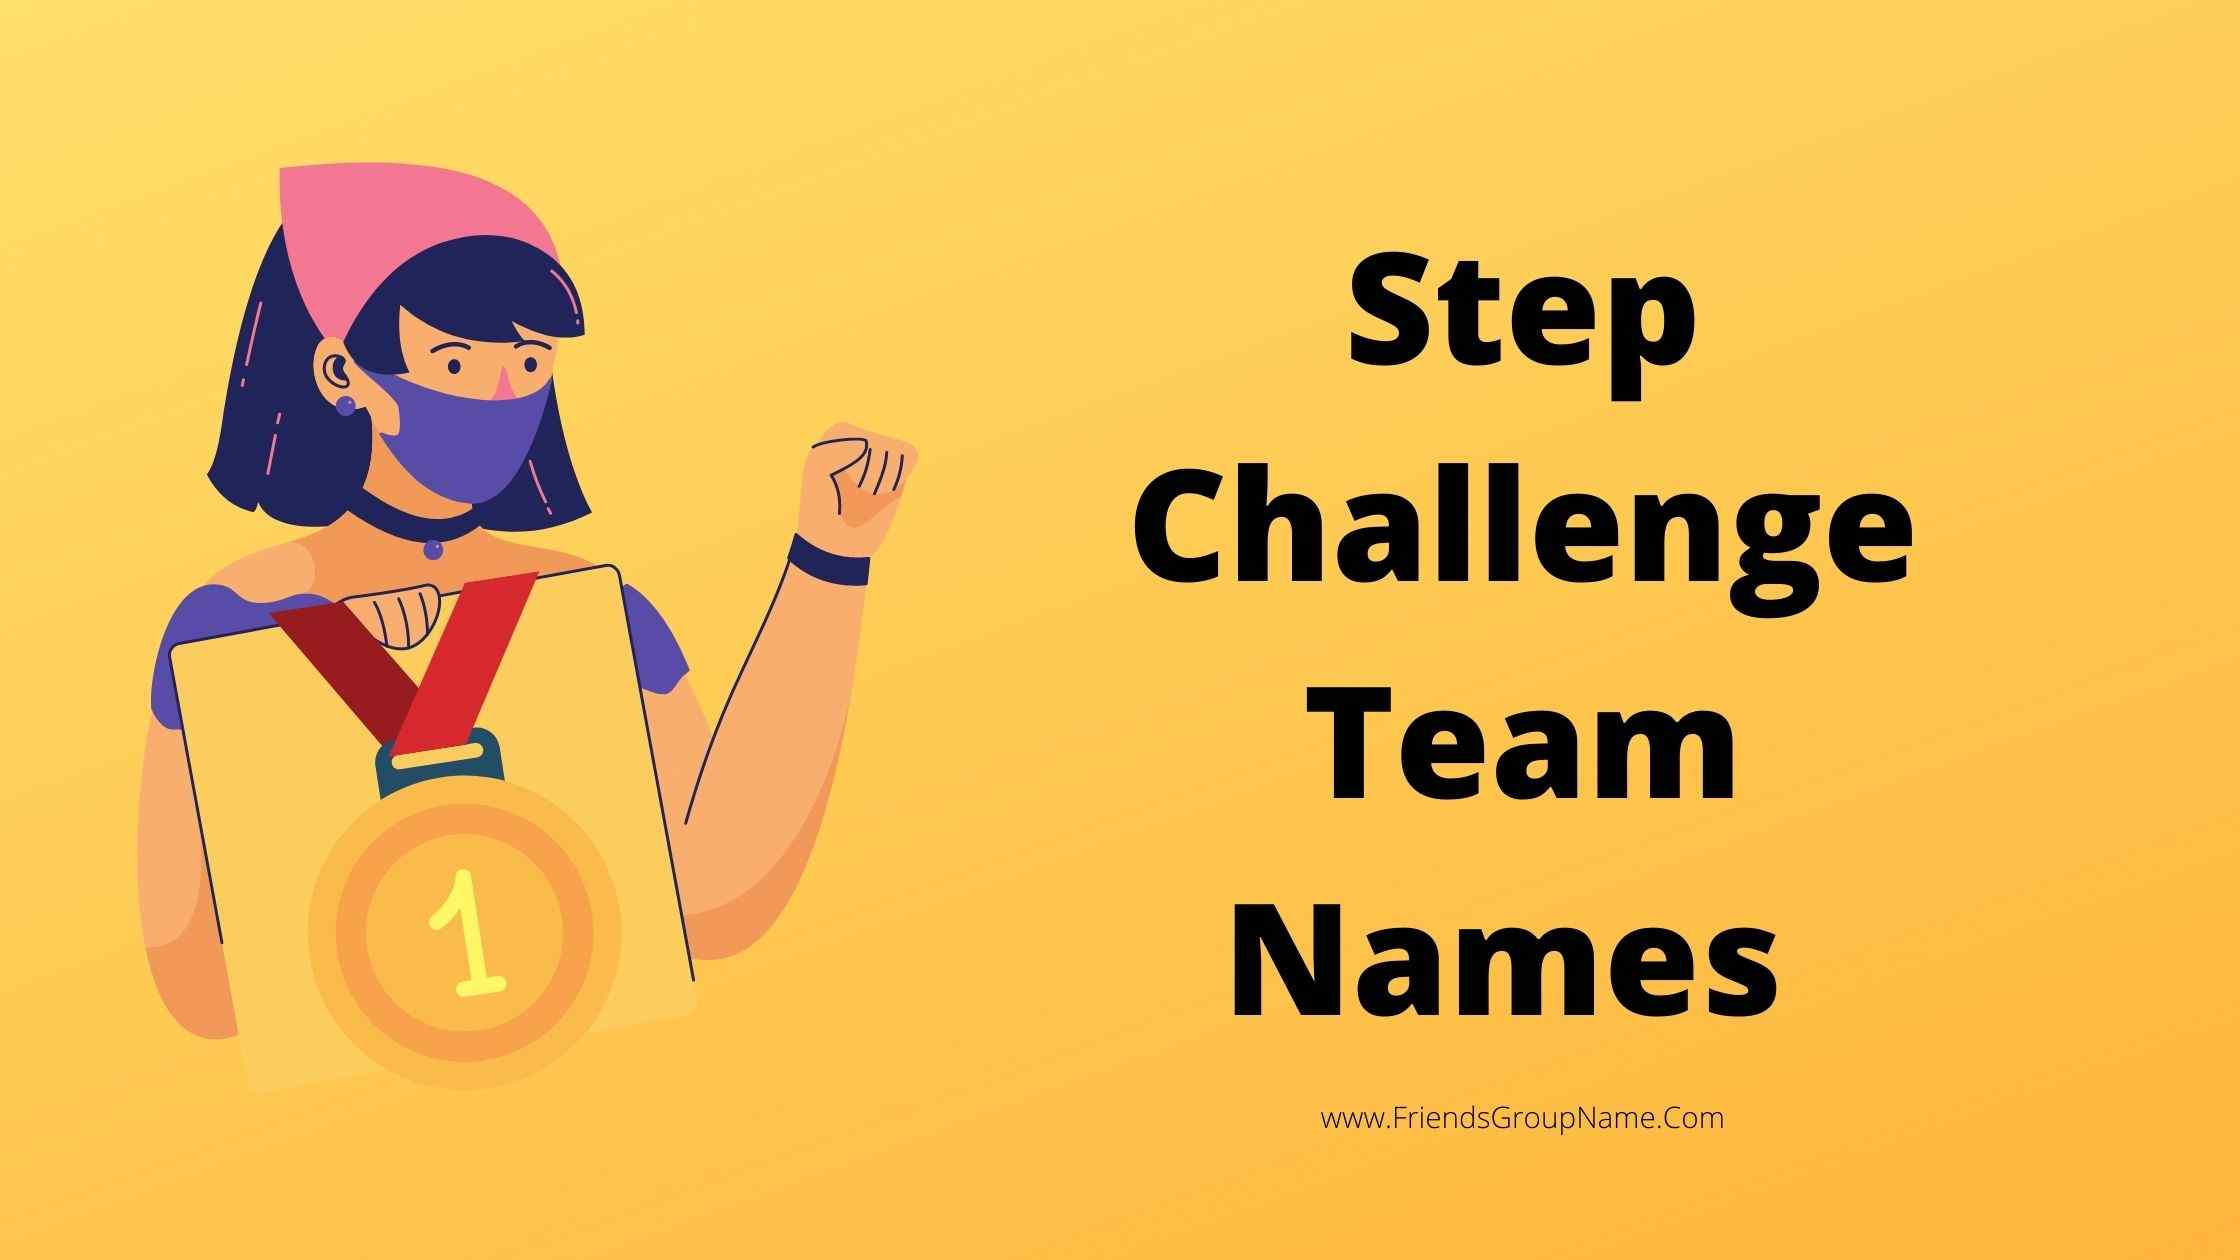 Step Challenge Team Names